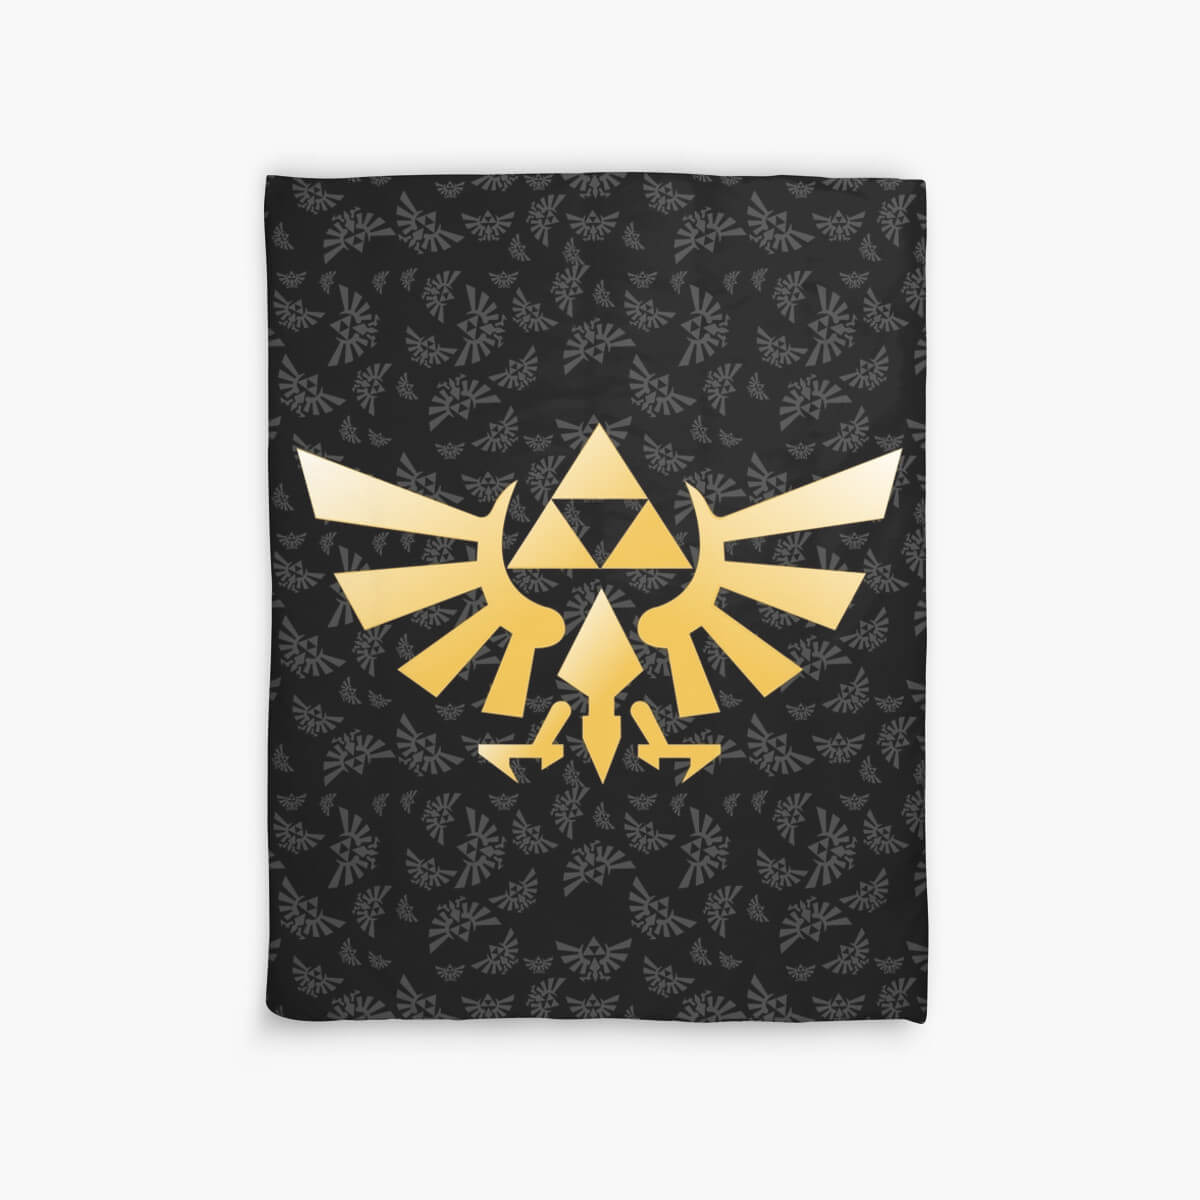 legend of zelda sheets set 13